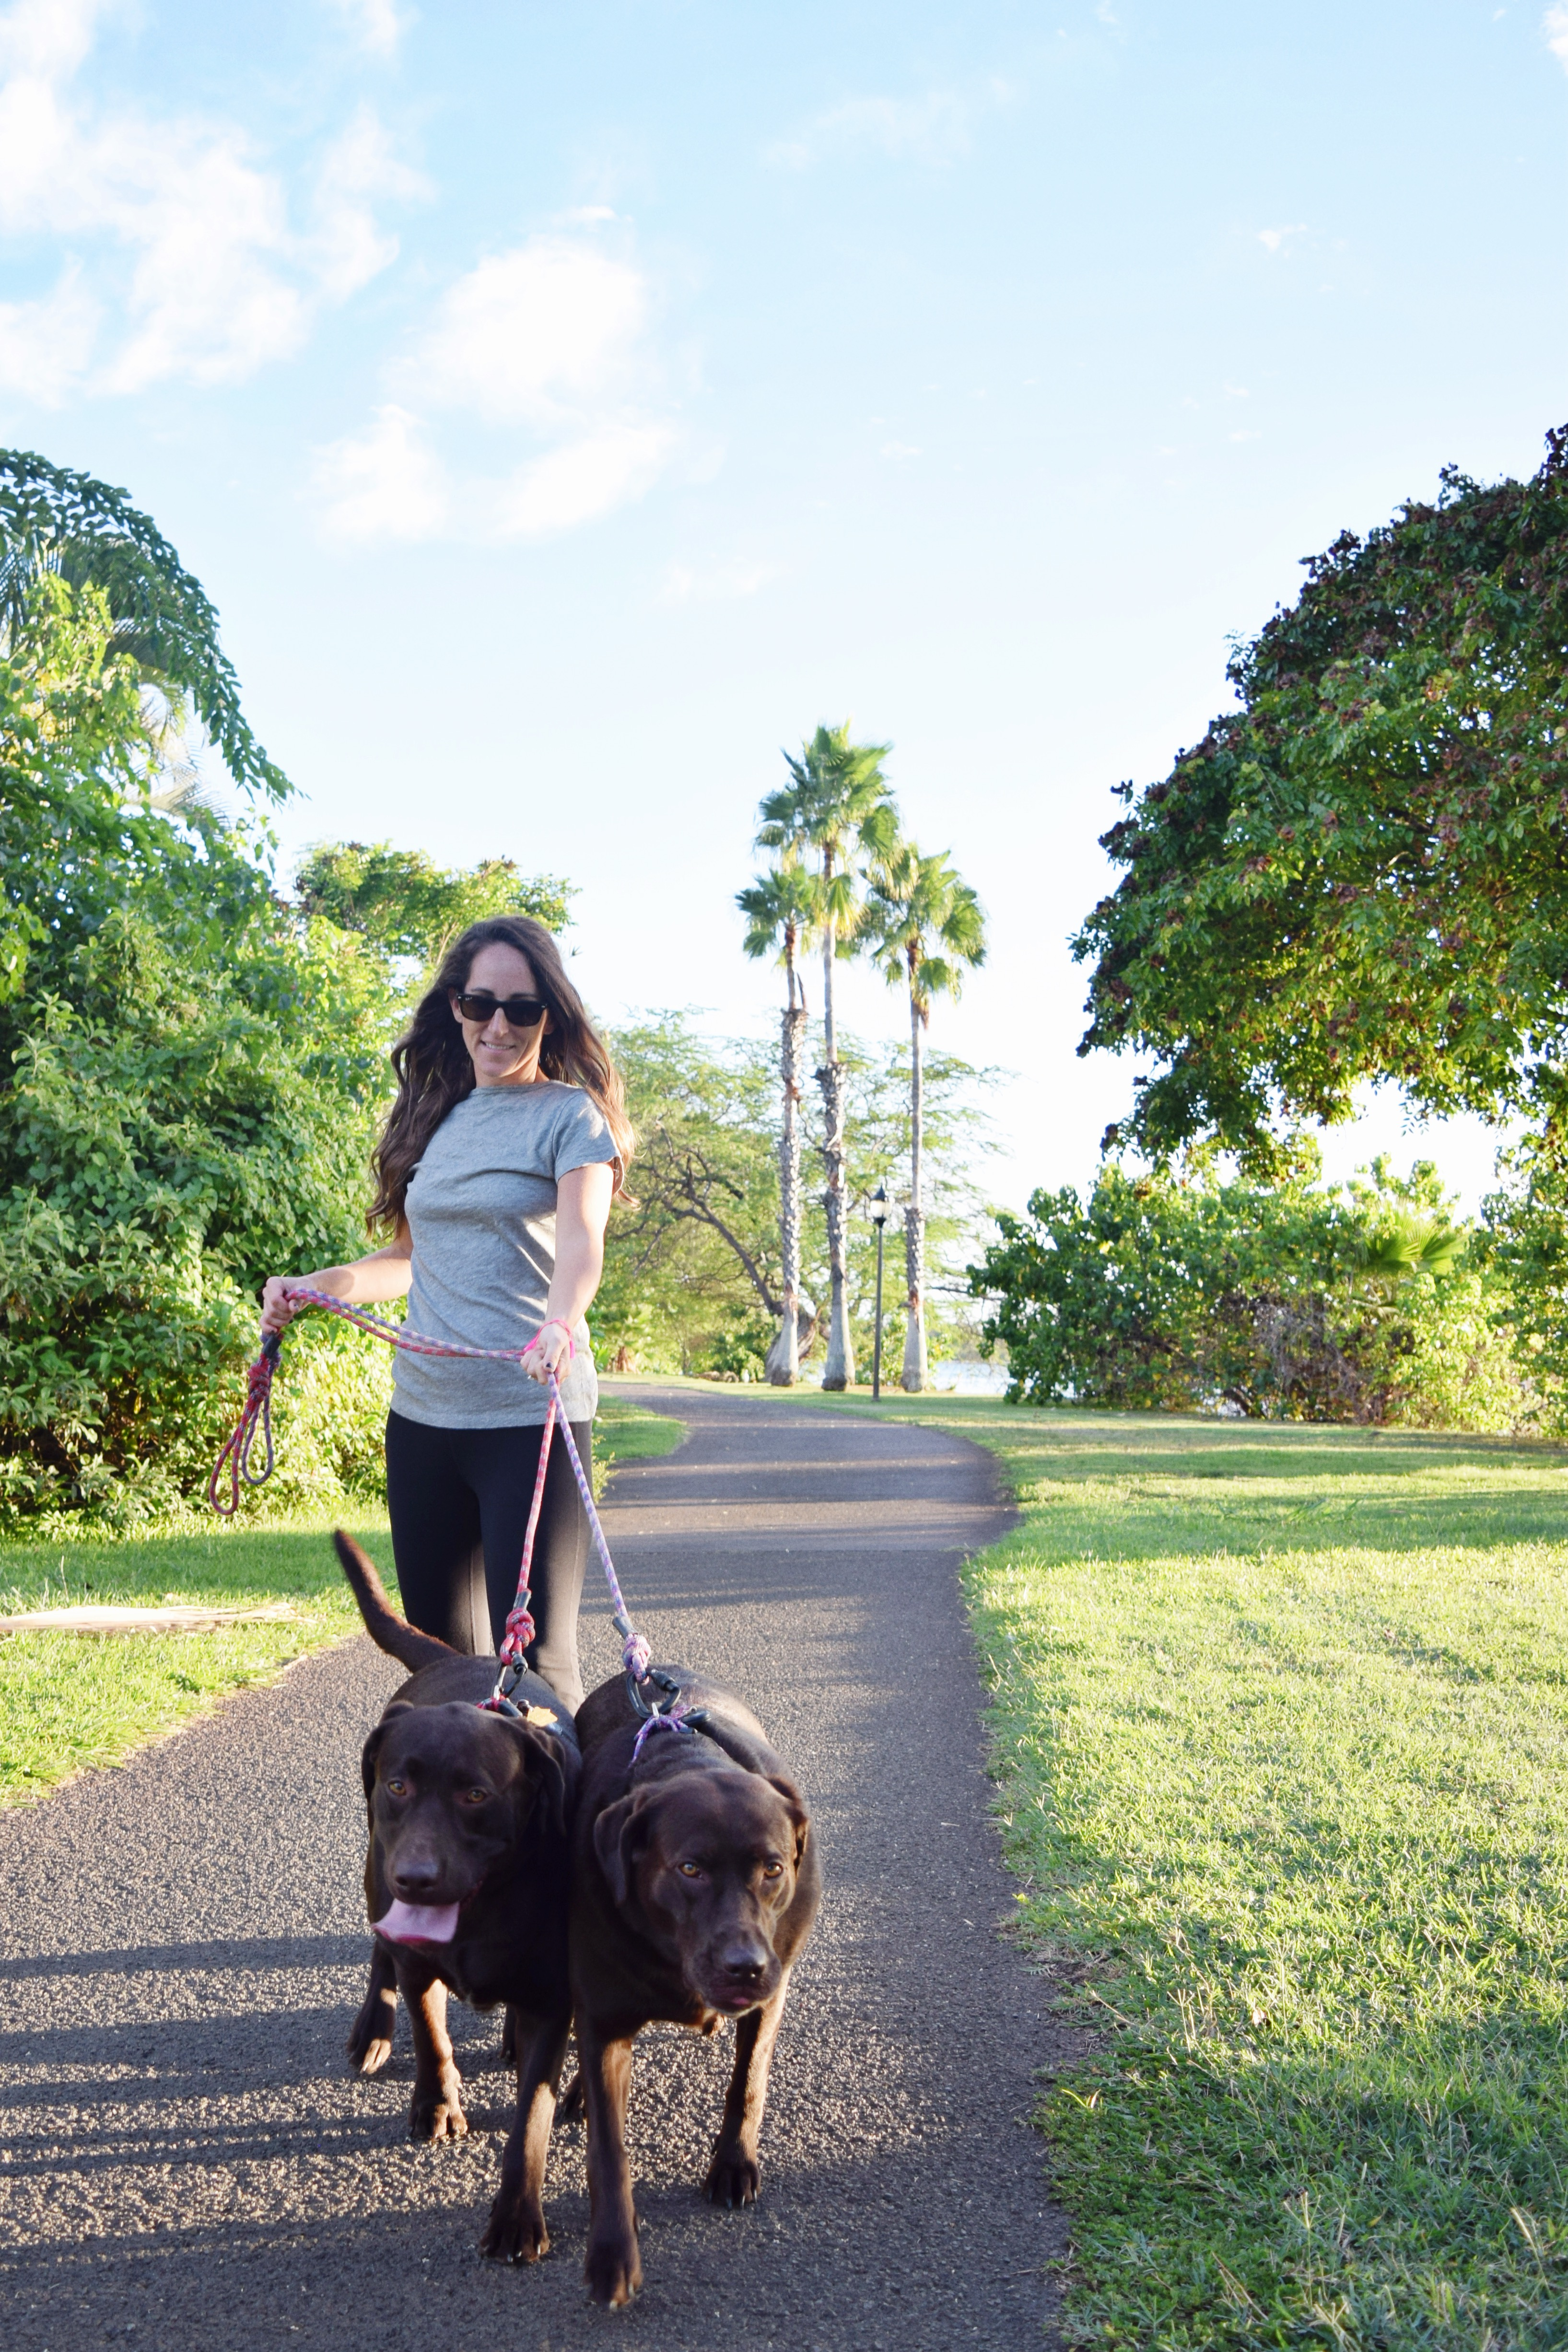 Keeping Your Pet Safe During Natural Disasters - Emergency Checklist For Pets - Communikait by Kait Hanson